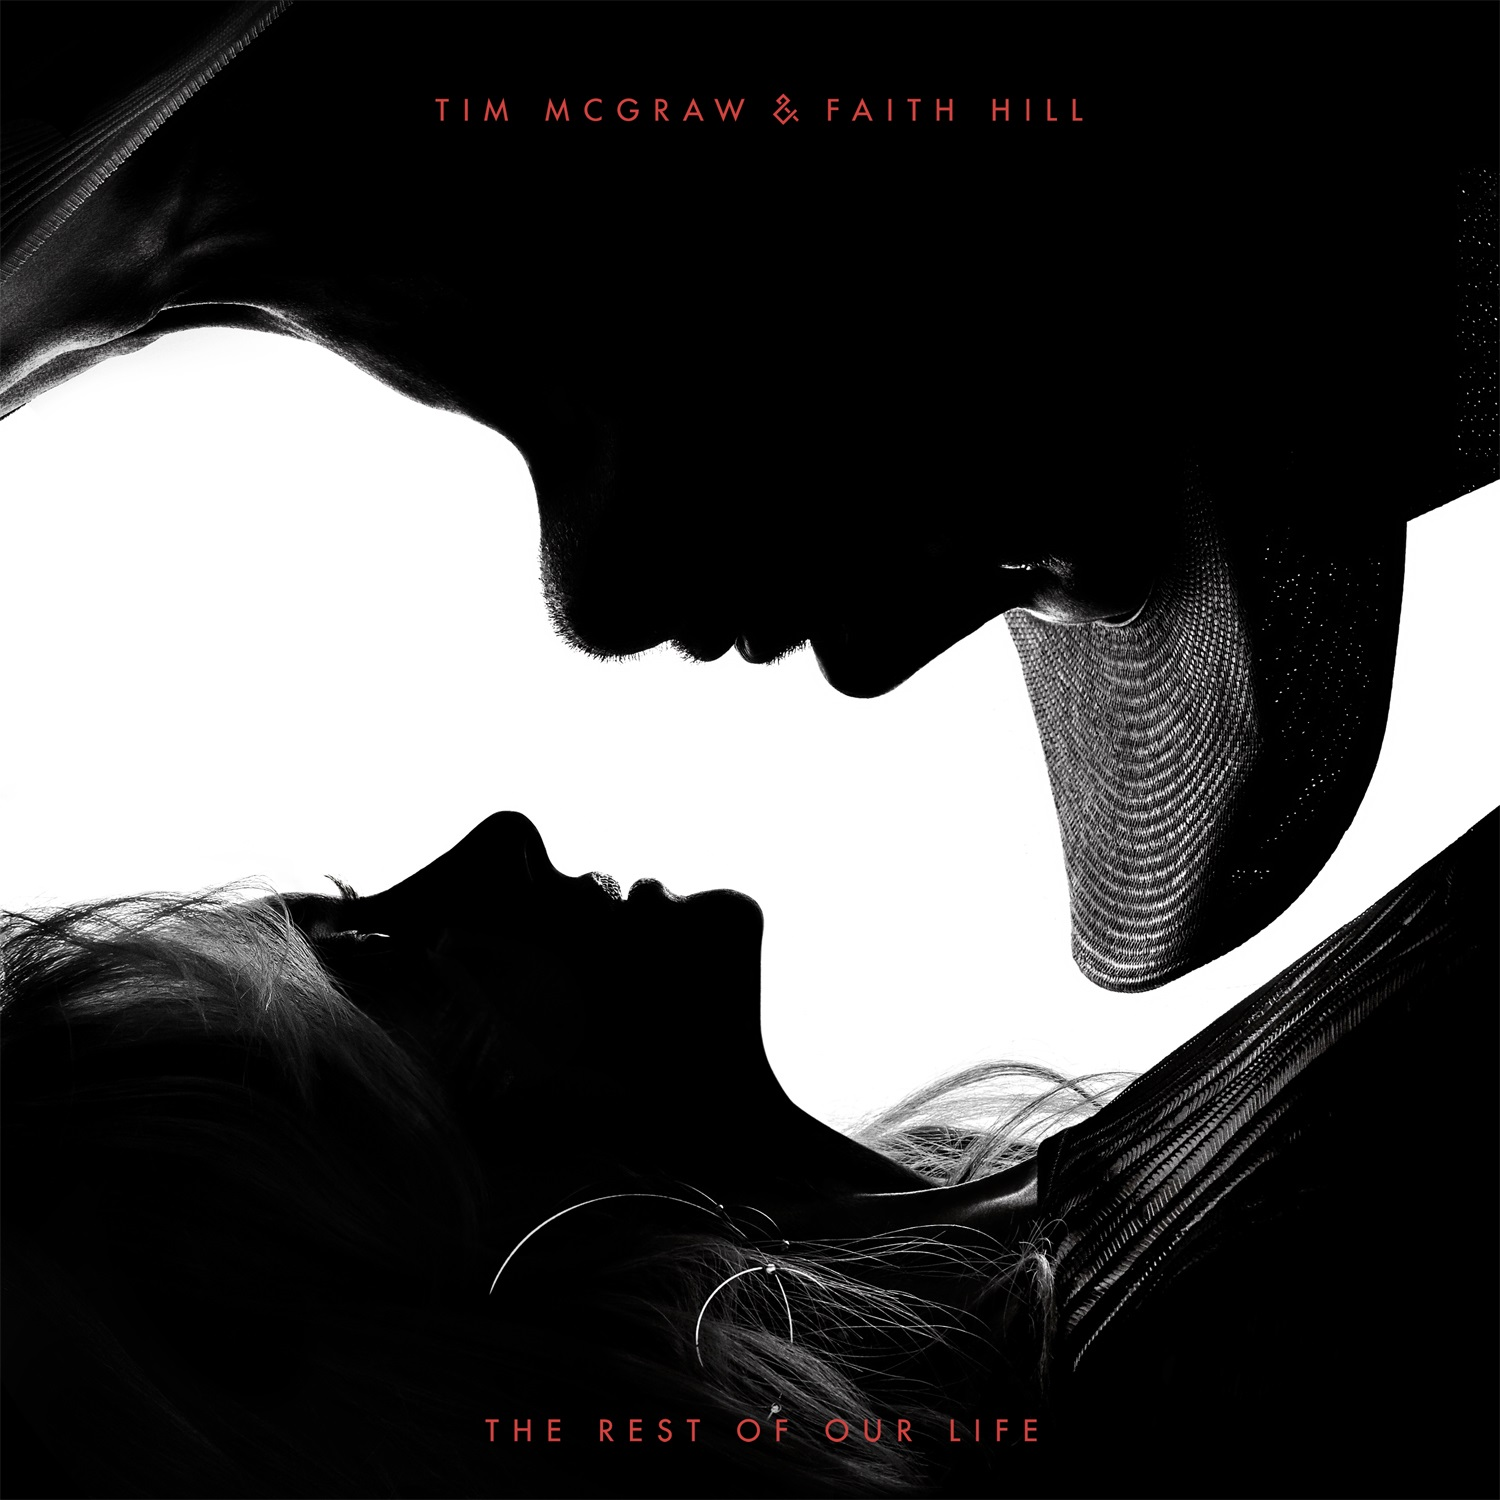 Tim McGraw, Faith Hill - The Rest of Our Life; Photo courtesy Sony Music Nashville